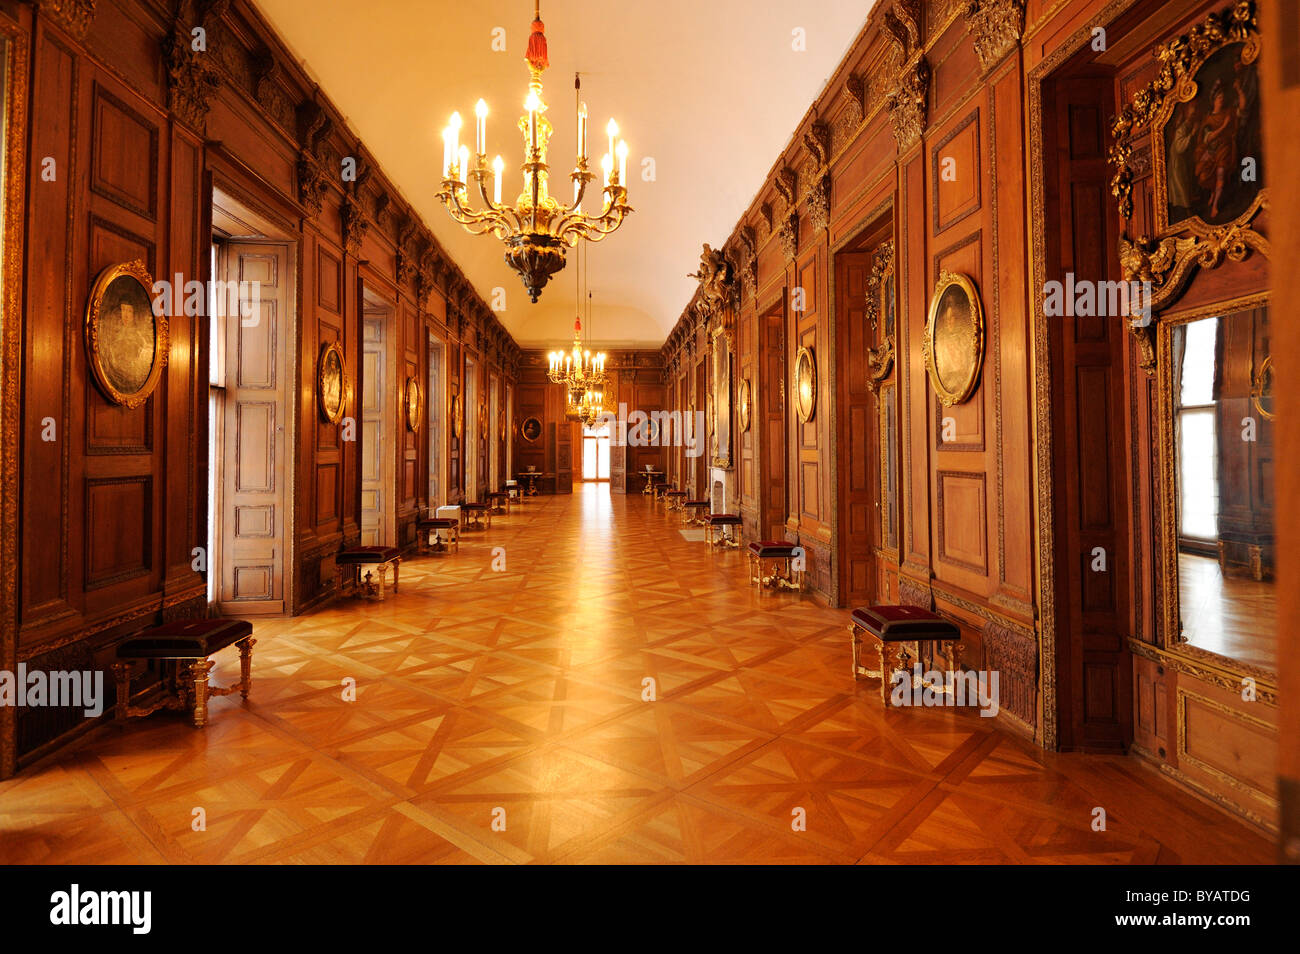 Holzvertäfelung Innen Interior Schloss Charlottenburg Palace Berlin Germany